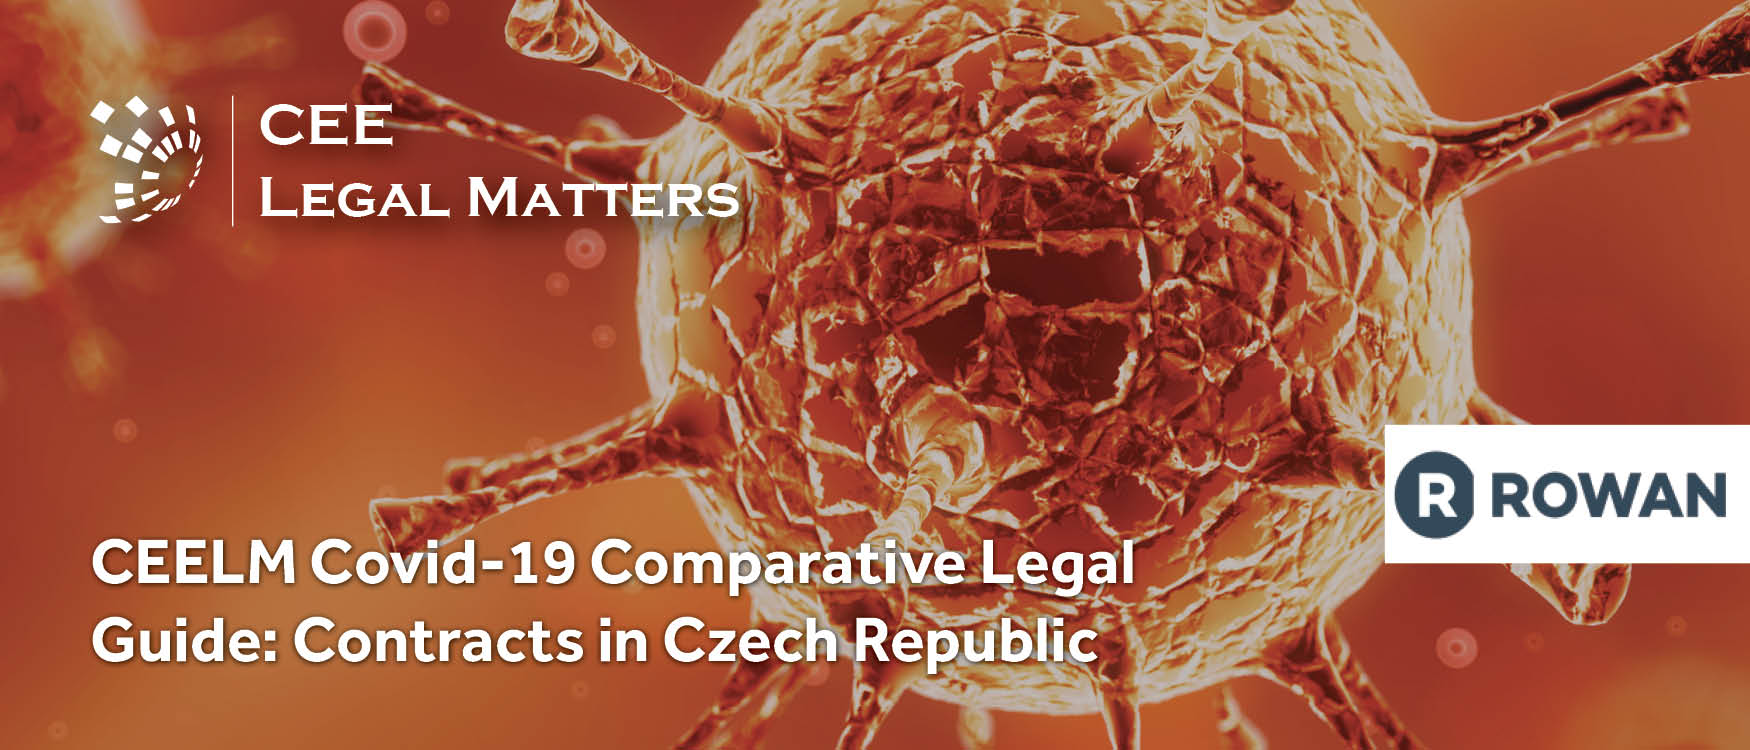 CEELM Covid-19 Comparative Legal Guide: Contracts in the Czech Republic